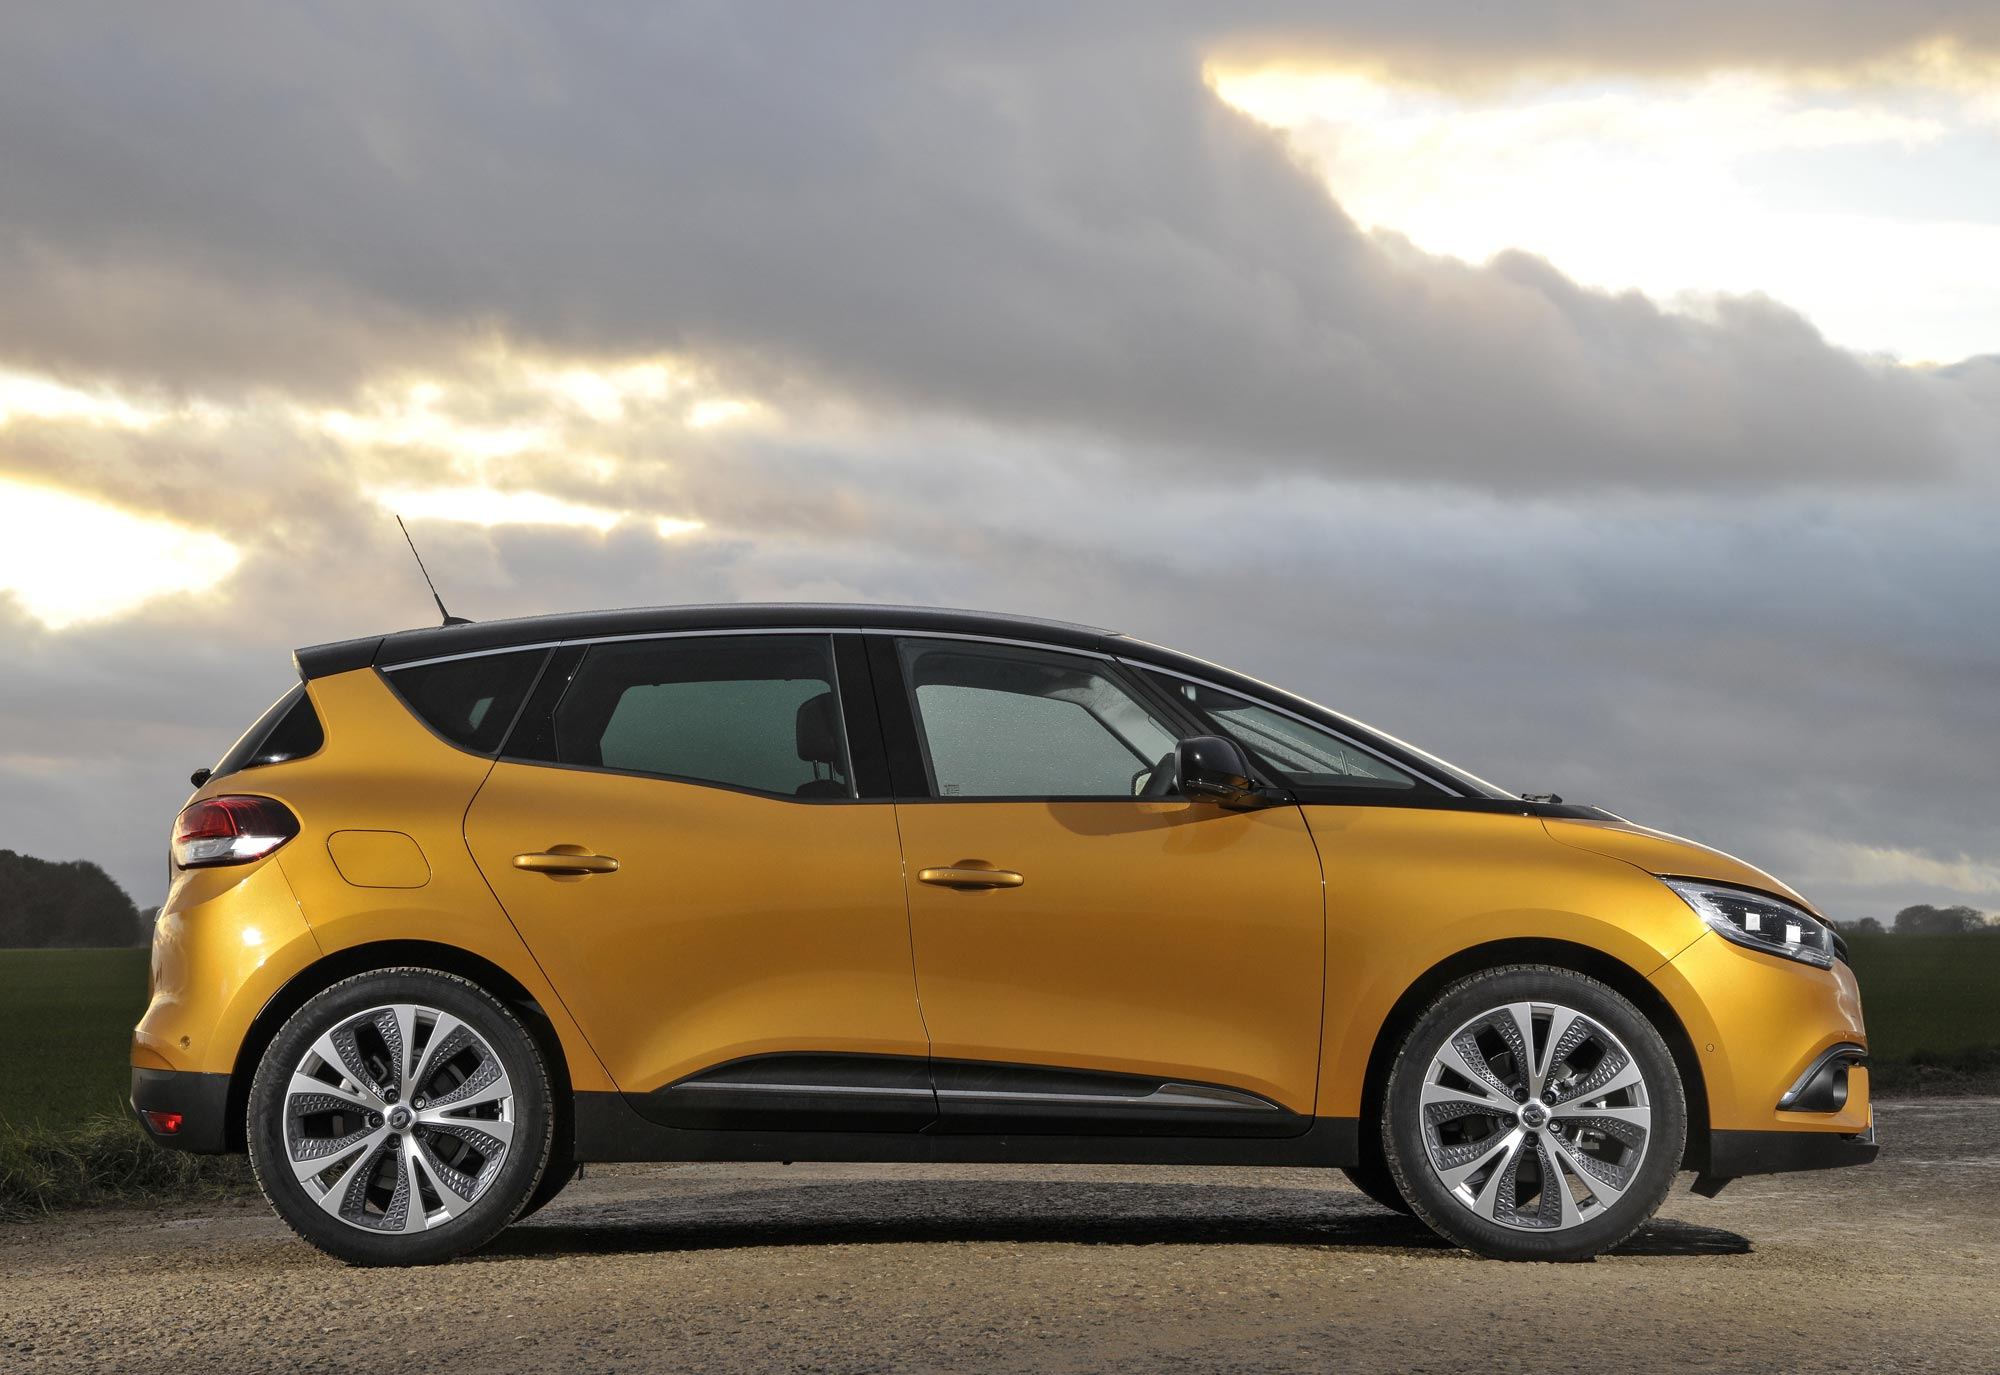 All-New-Renault-Scénic-Dynamique-S-dCi-110-(13).jpg